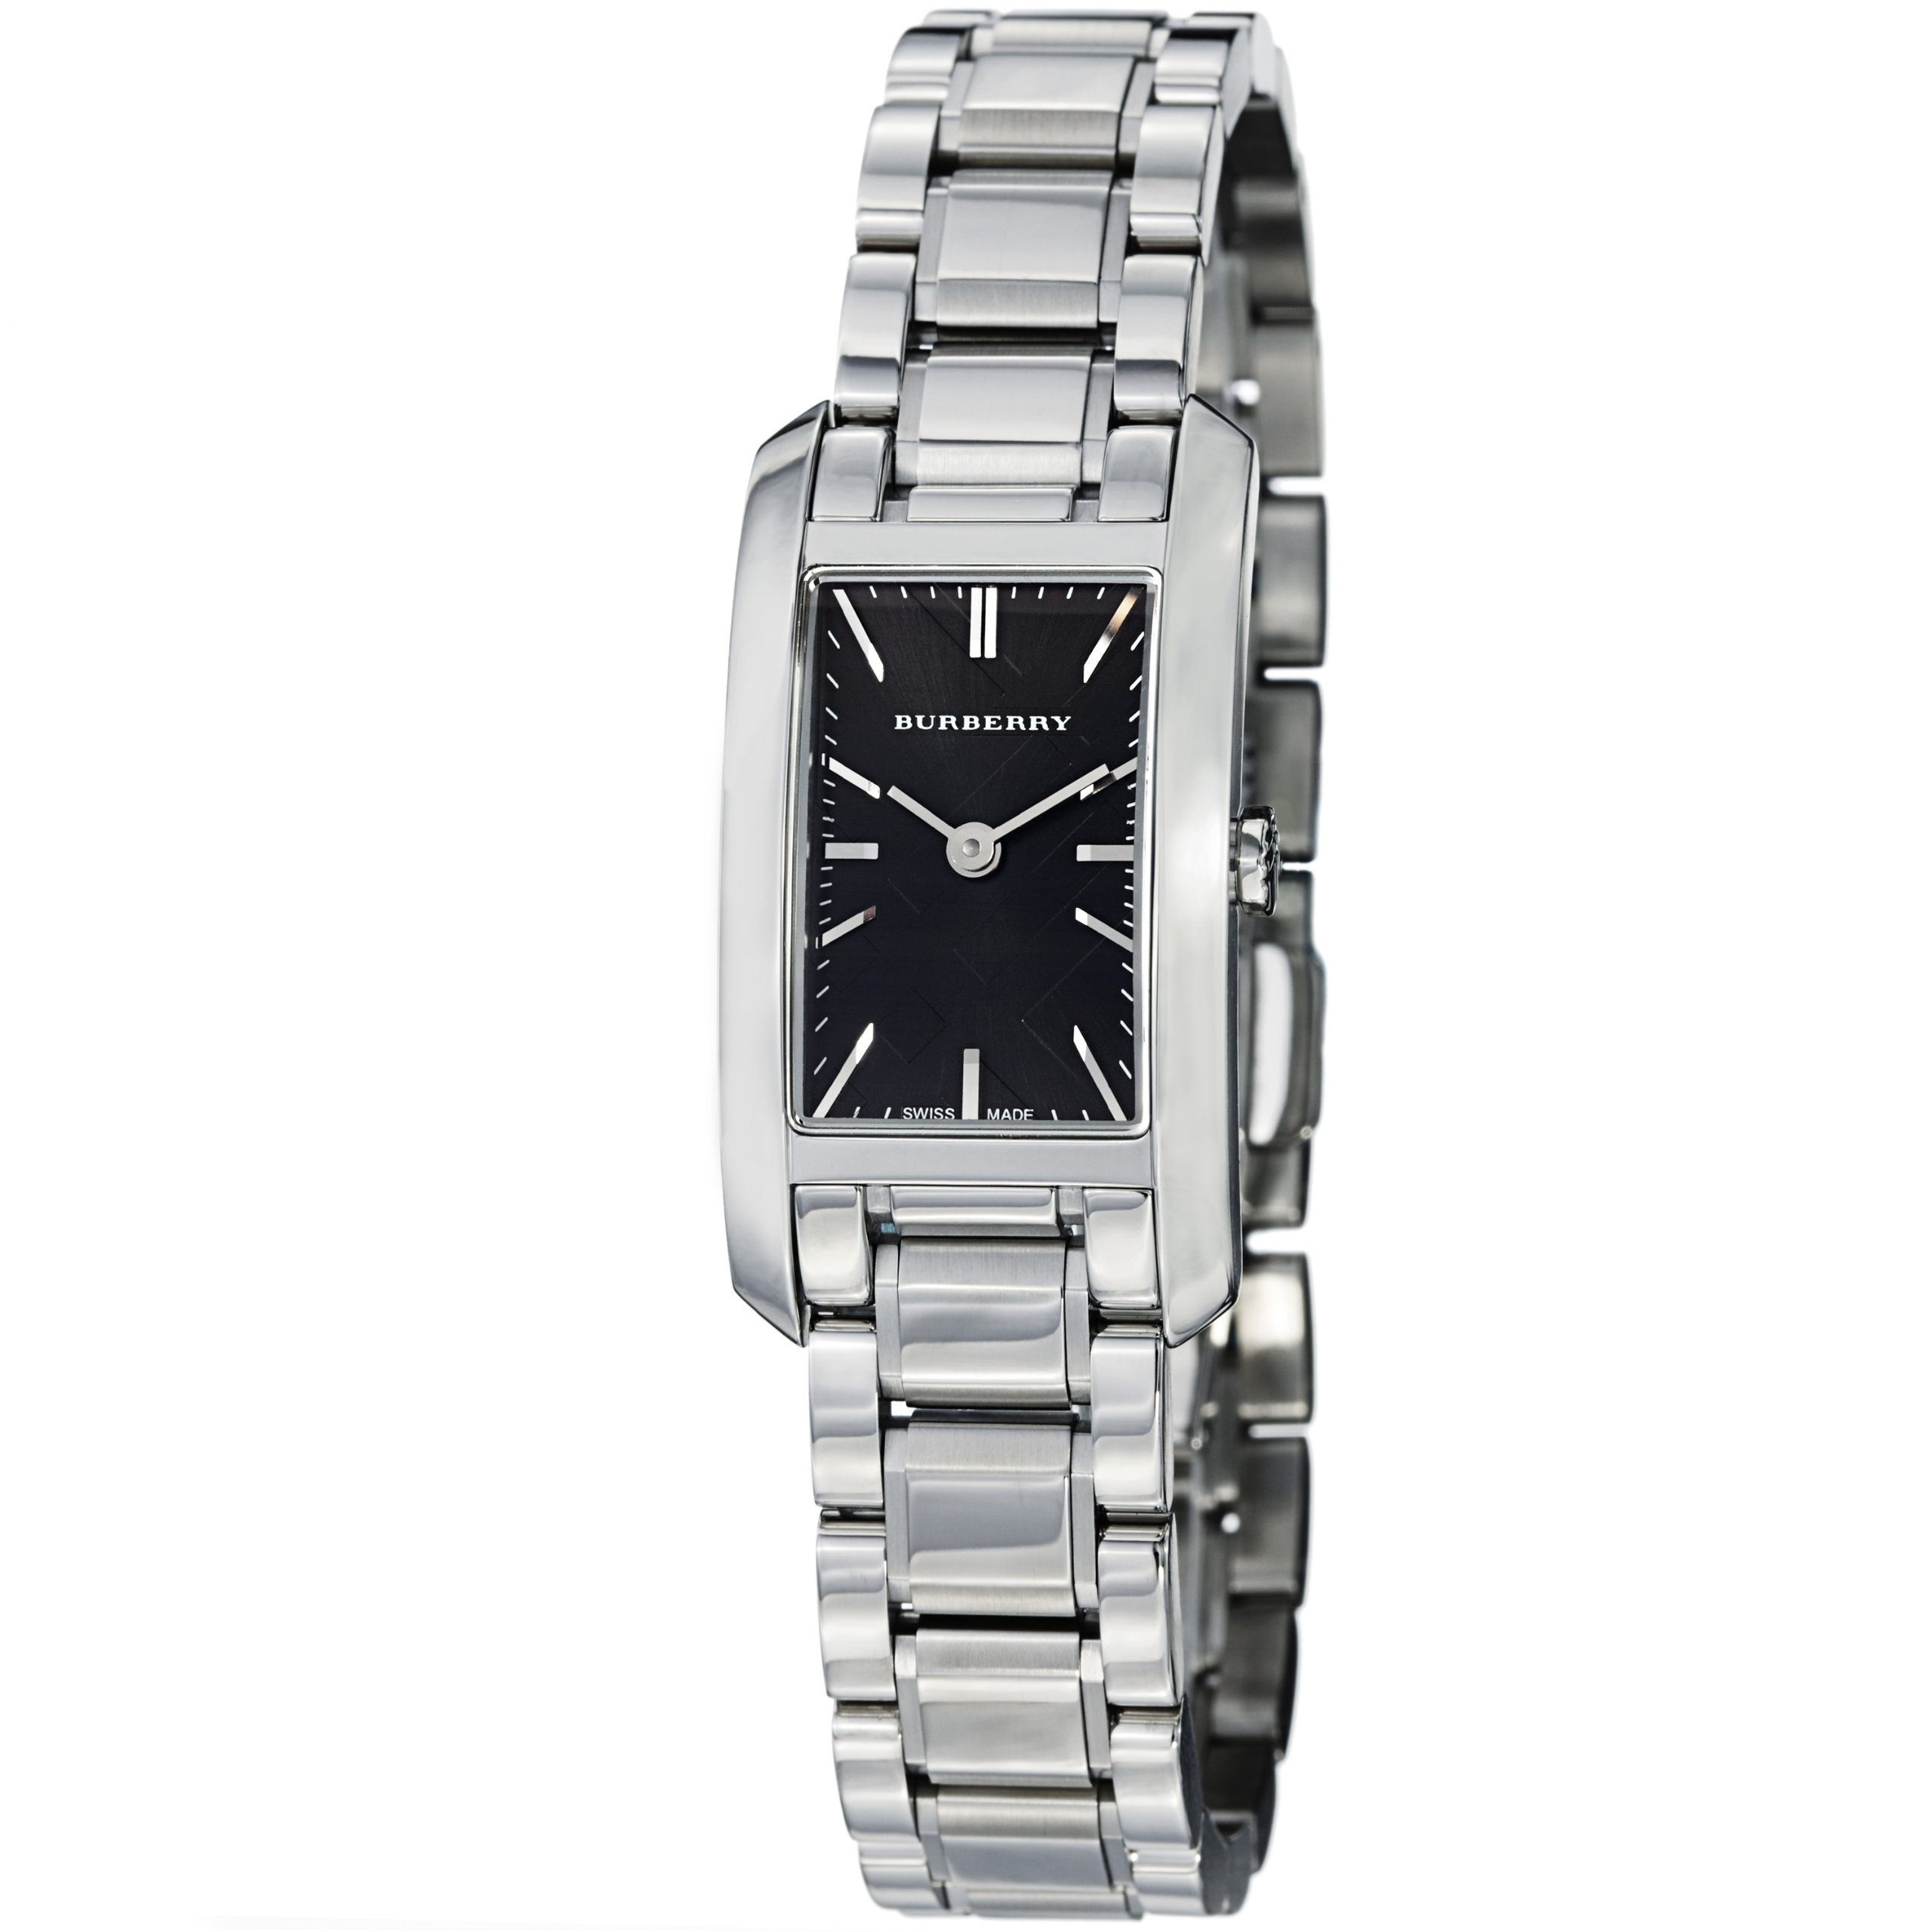 Burberry Check Engraved Rectangle Ladies-small Black Dial Stainless Steel Watch BU9501